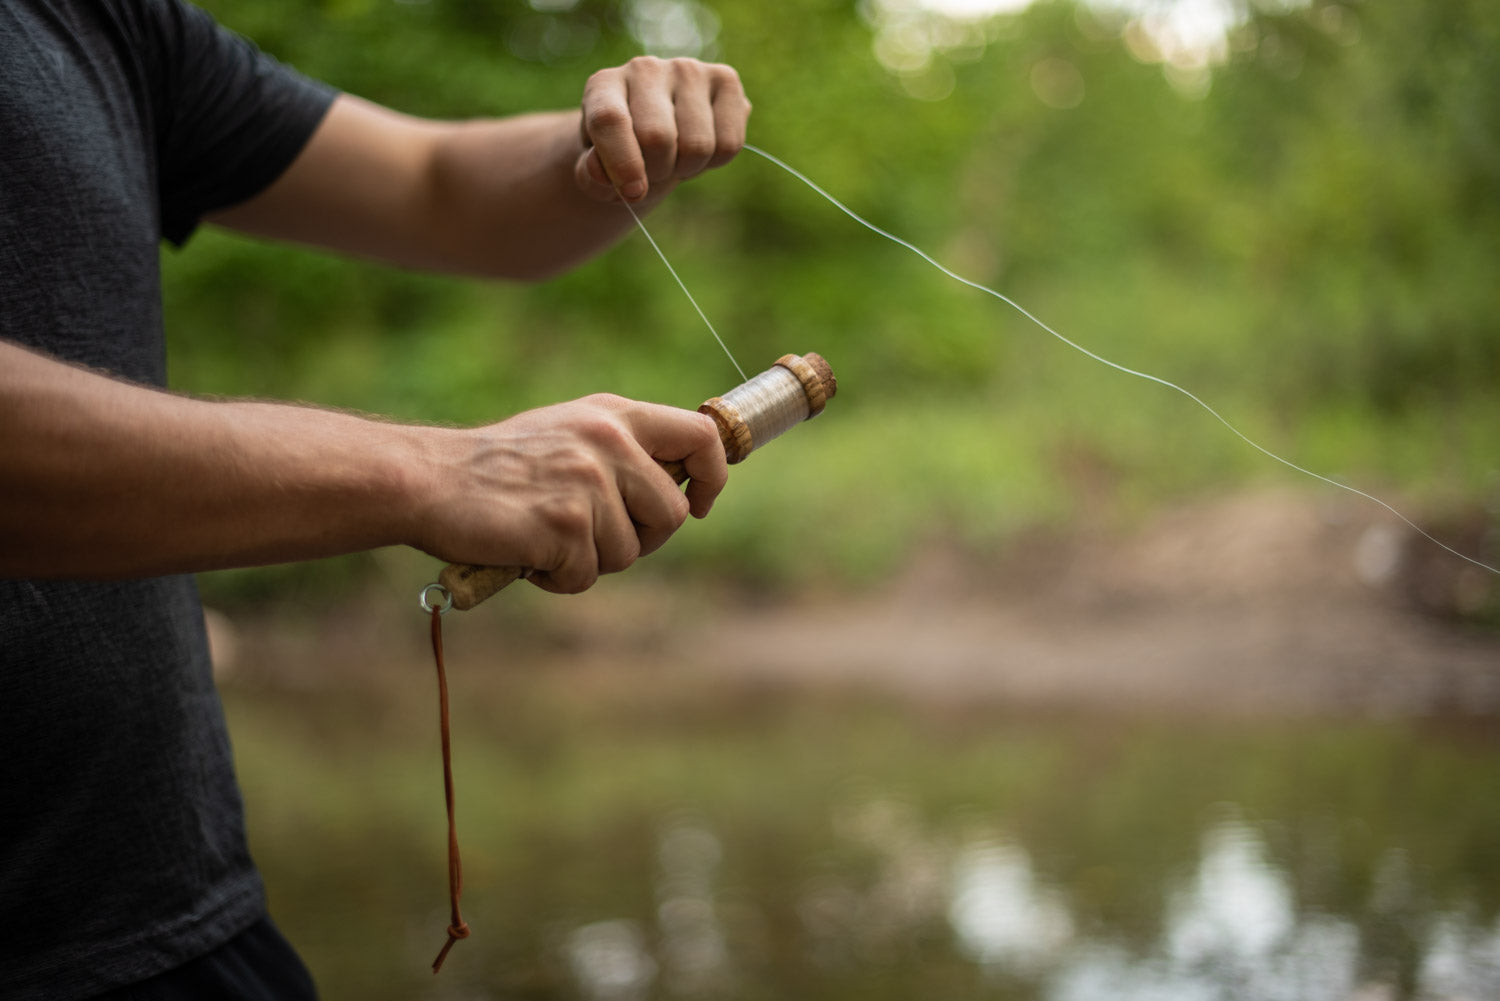 Fishing with a handline